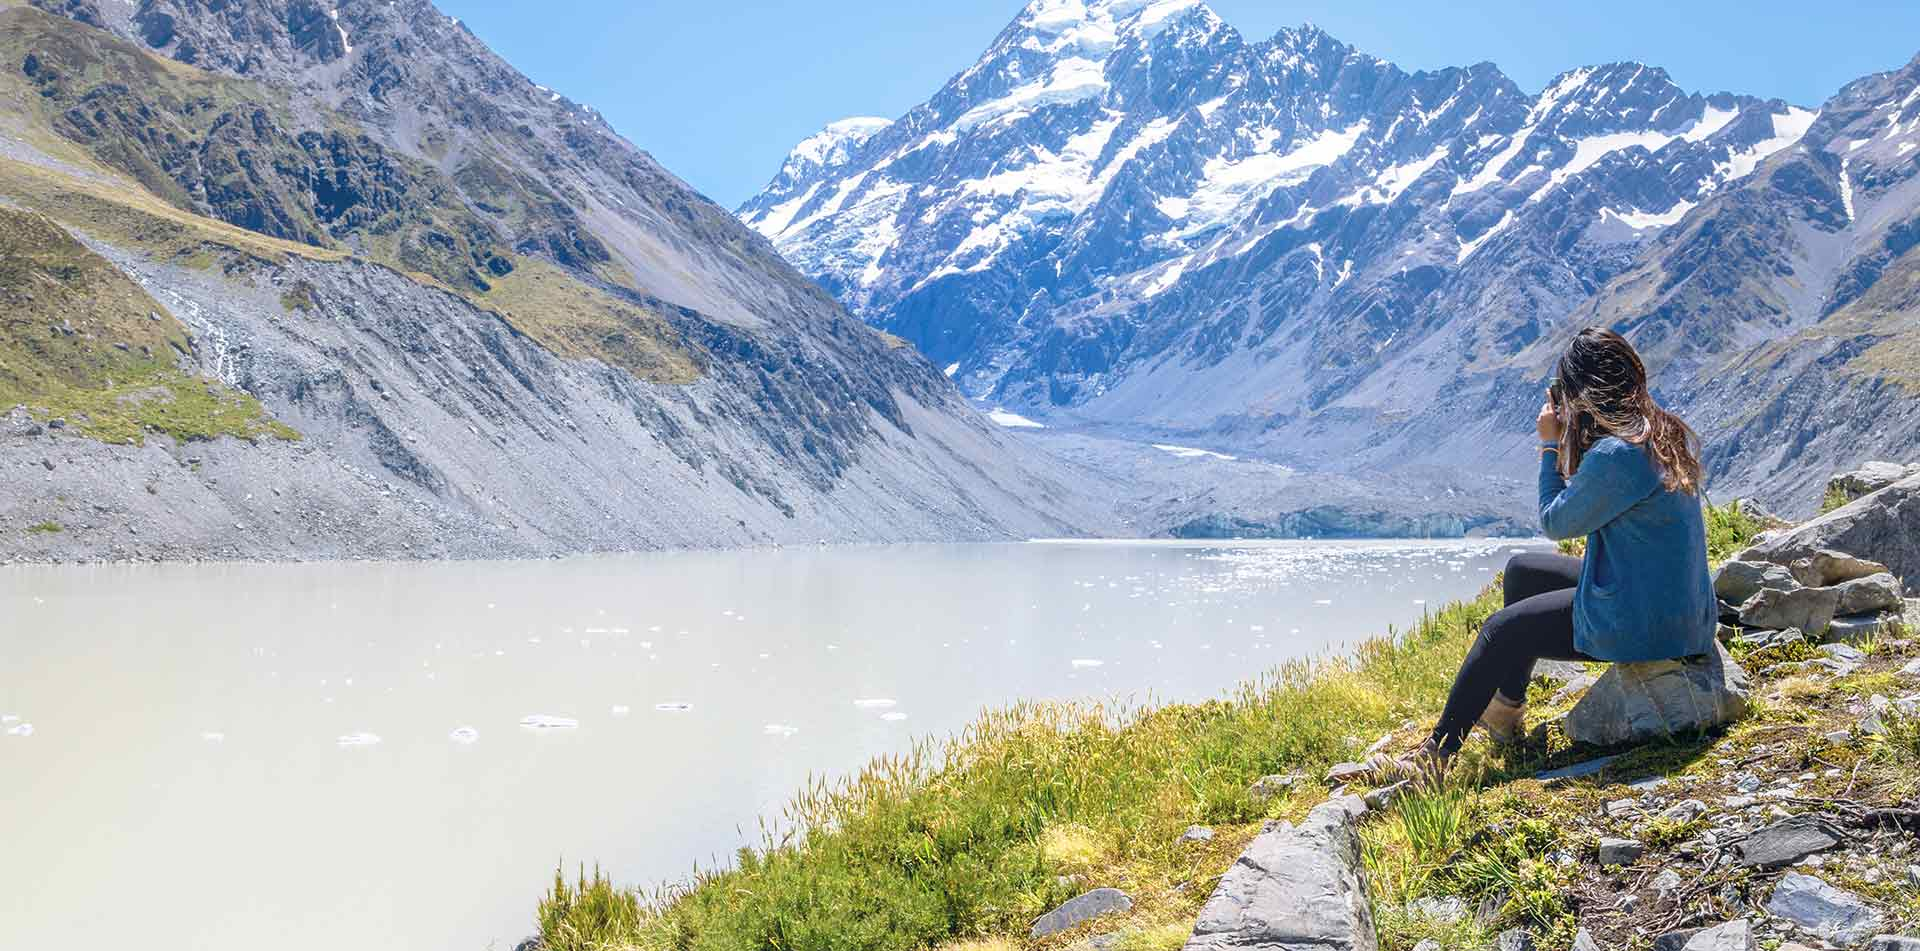 Oceania New Zealand Aoraki Mount Cook National Park woman sitting near Hooker Glacier - luxury vacation destinations